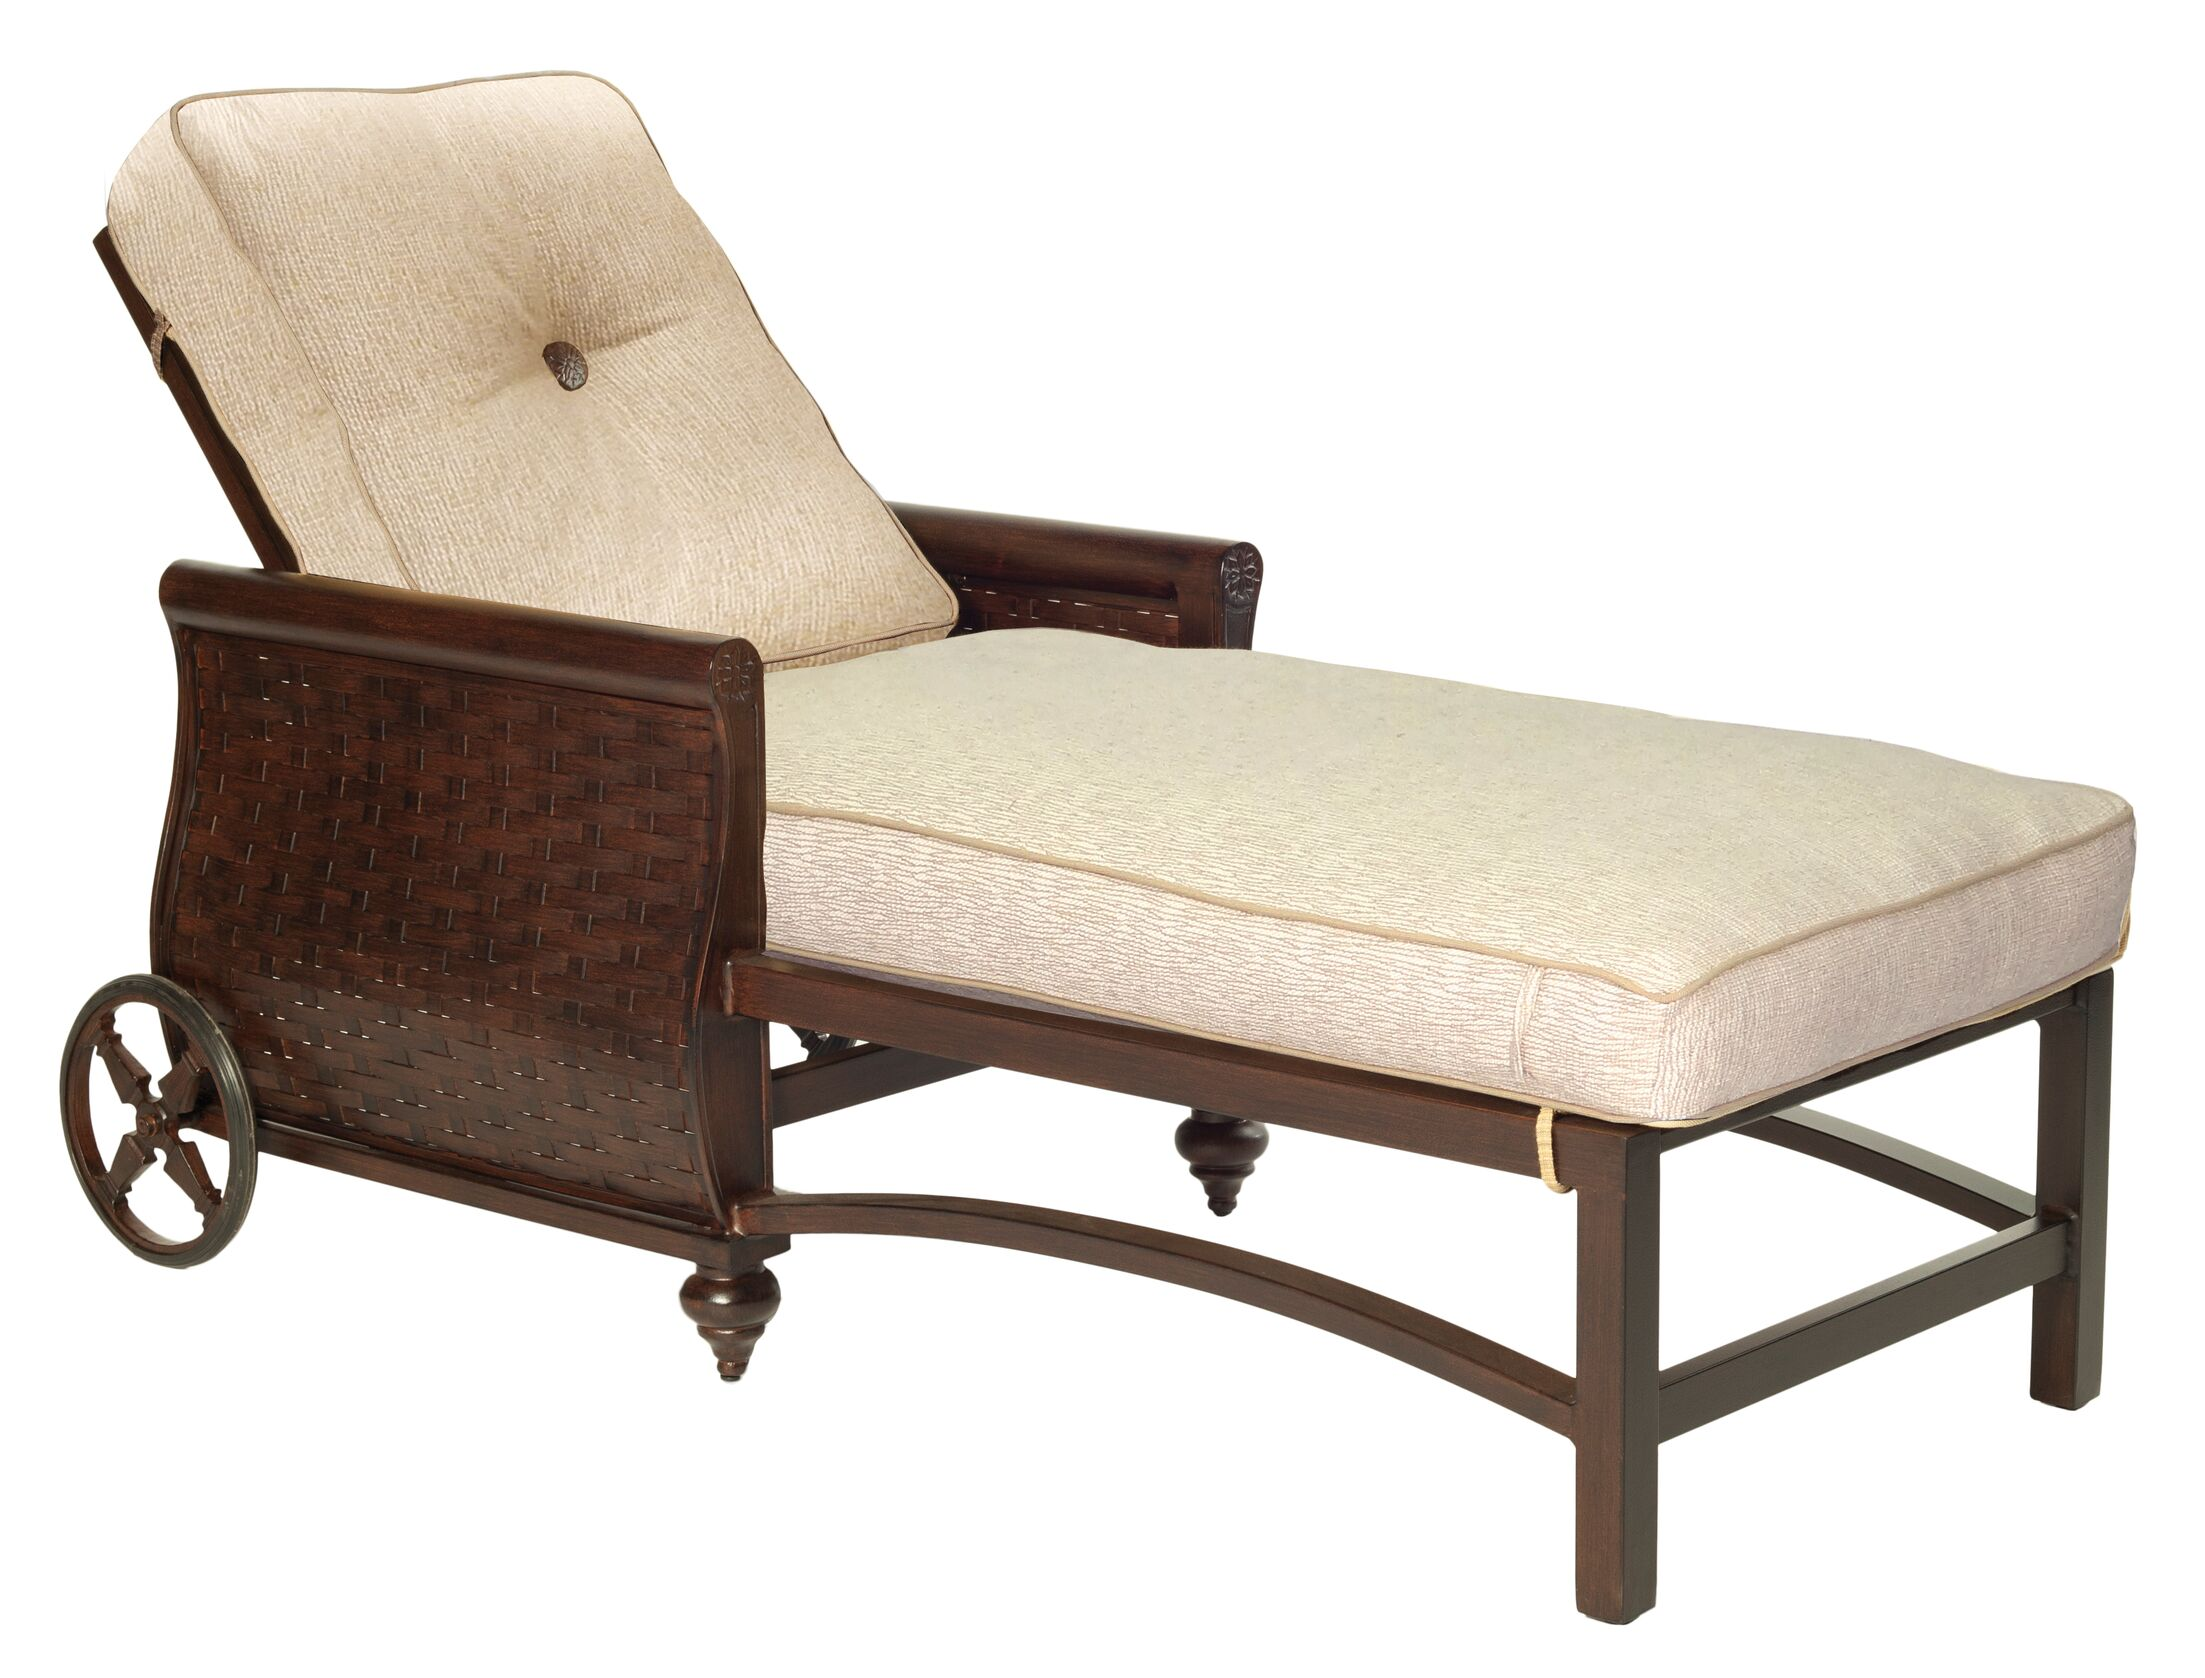 French Quarter Chaise Lounge with Cushion